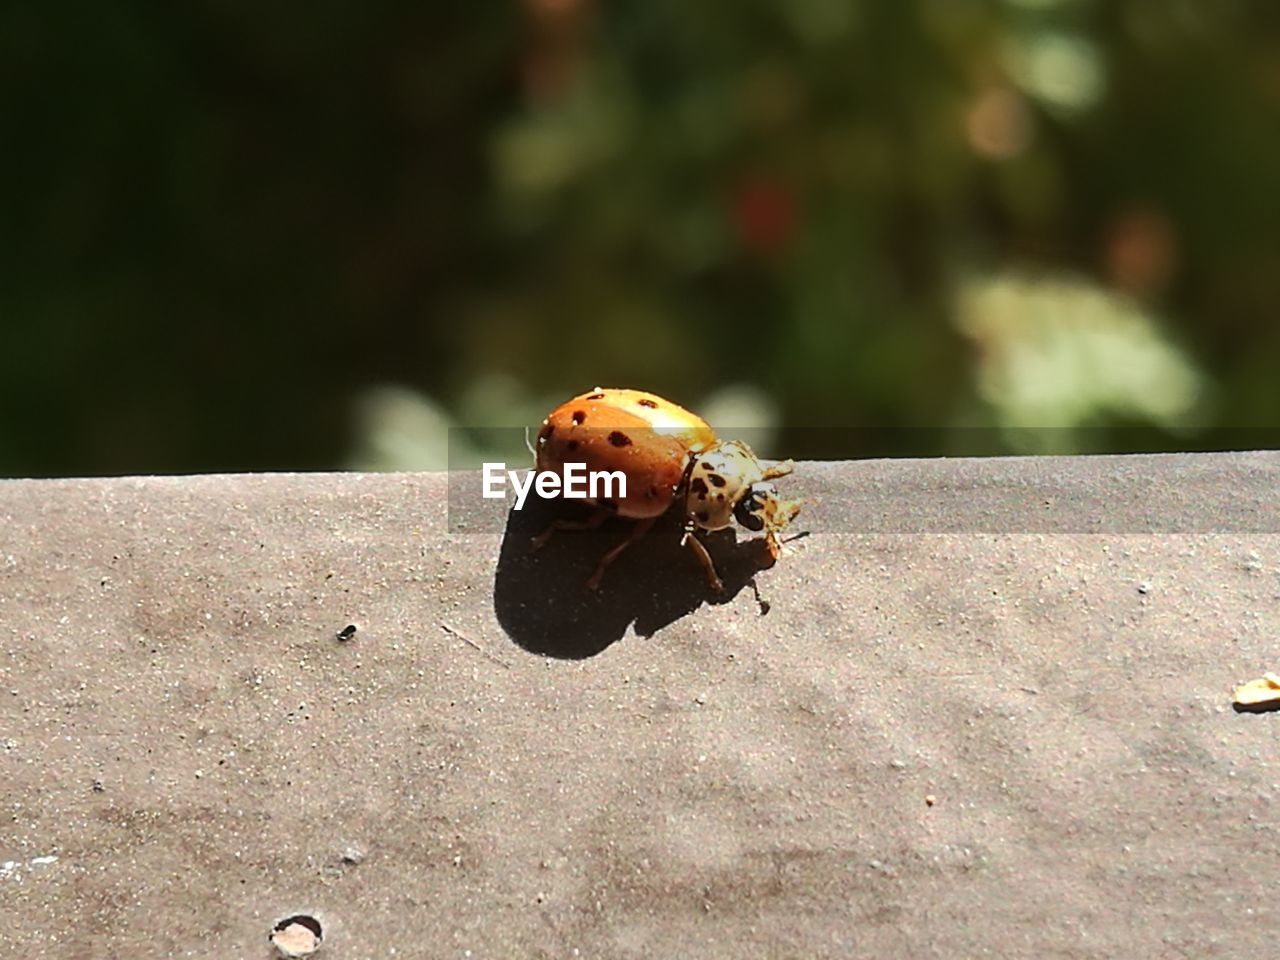 animal wildlife, animal themes, animal, animals in the wild, invertebrate, one animal, insect, focus on foreground, ladybug, day, close-up, nature, beetle, no people, sunlight, outdoors, beauty in nature, spotted, plant, zoology, small